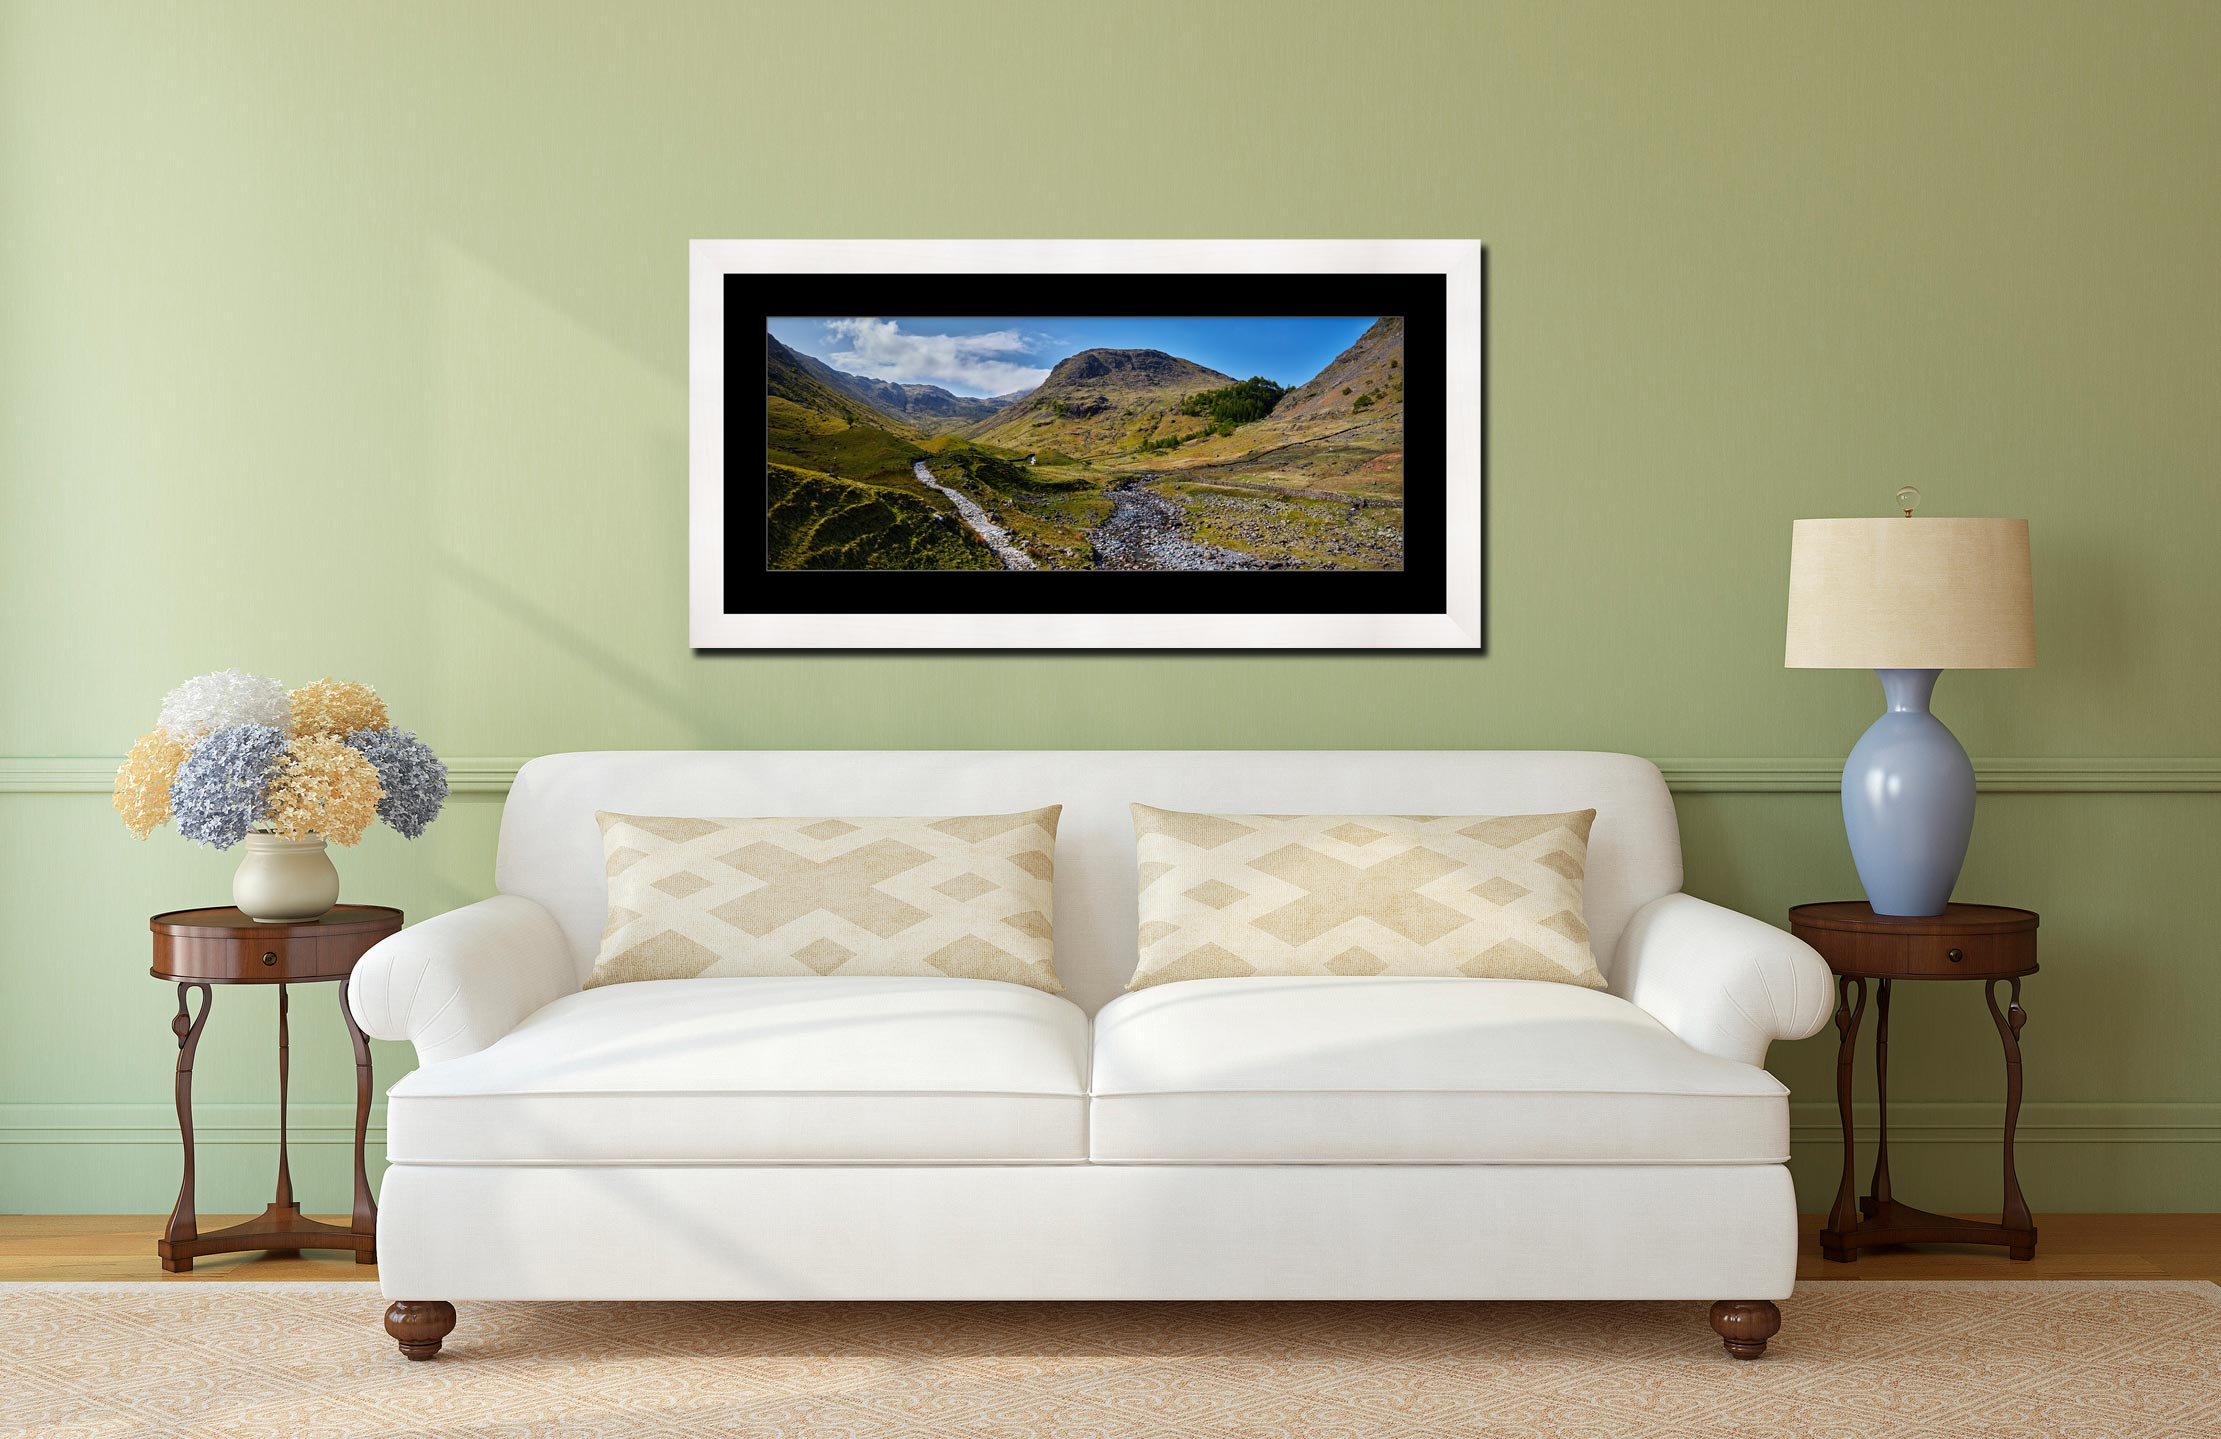 Seathwaite Valley - Framed Print with Mount on Wall